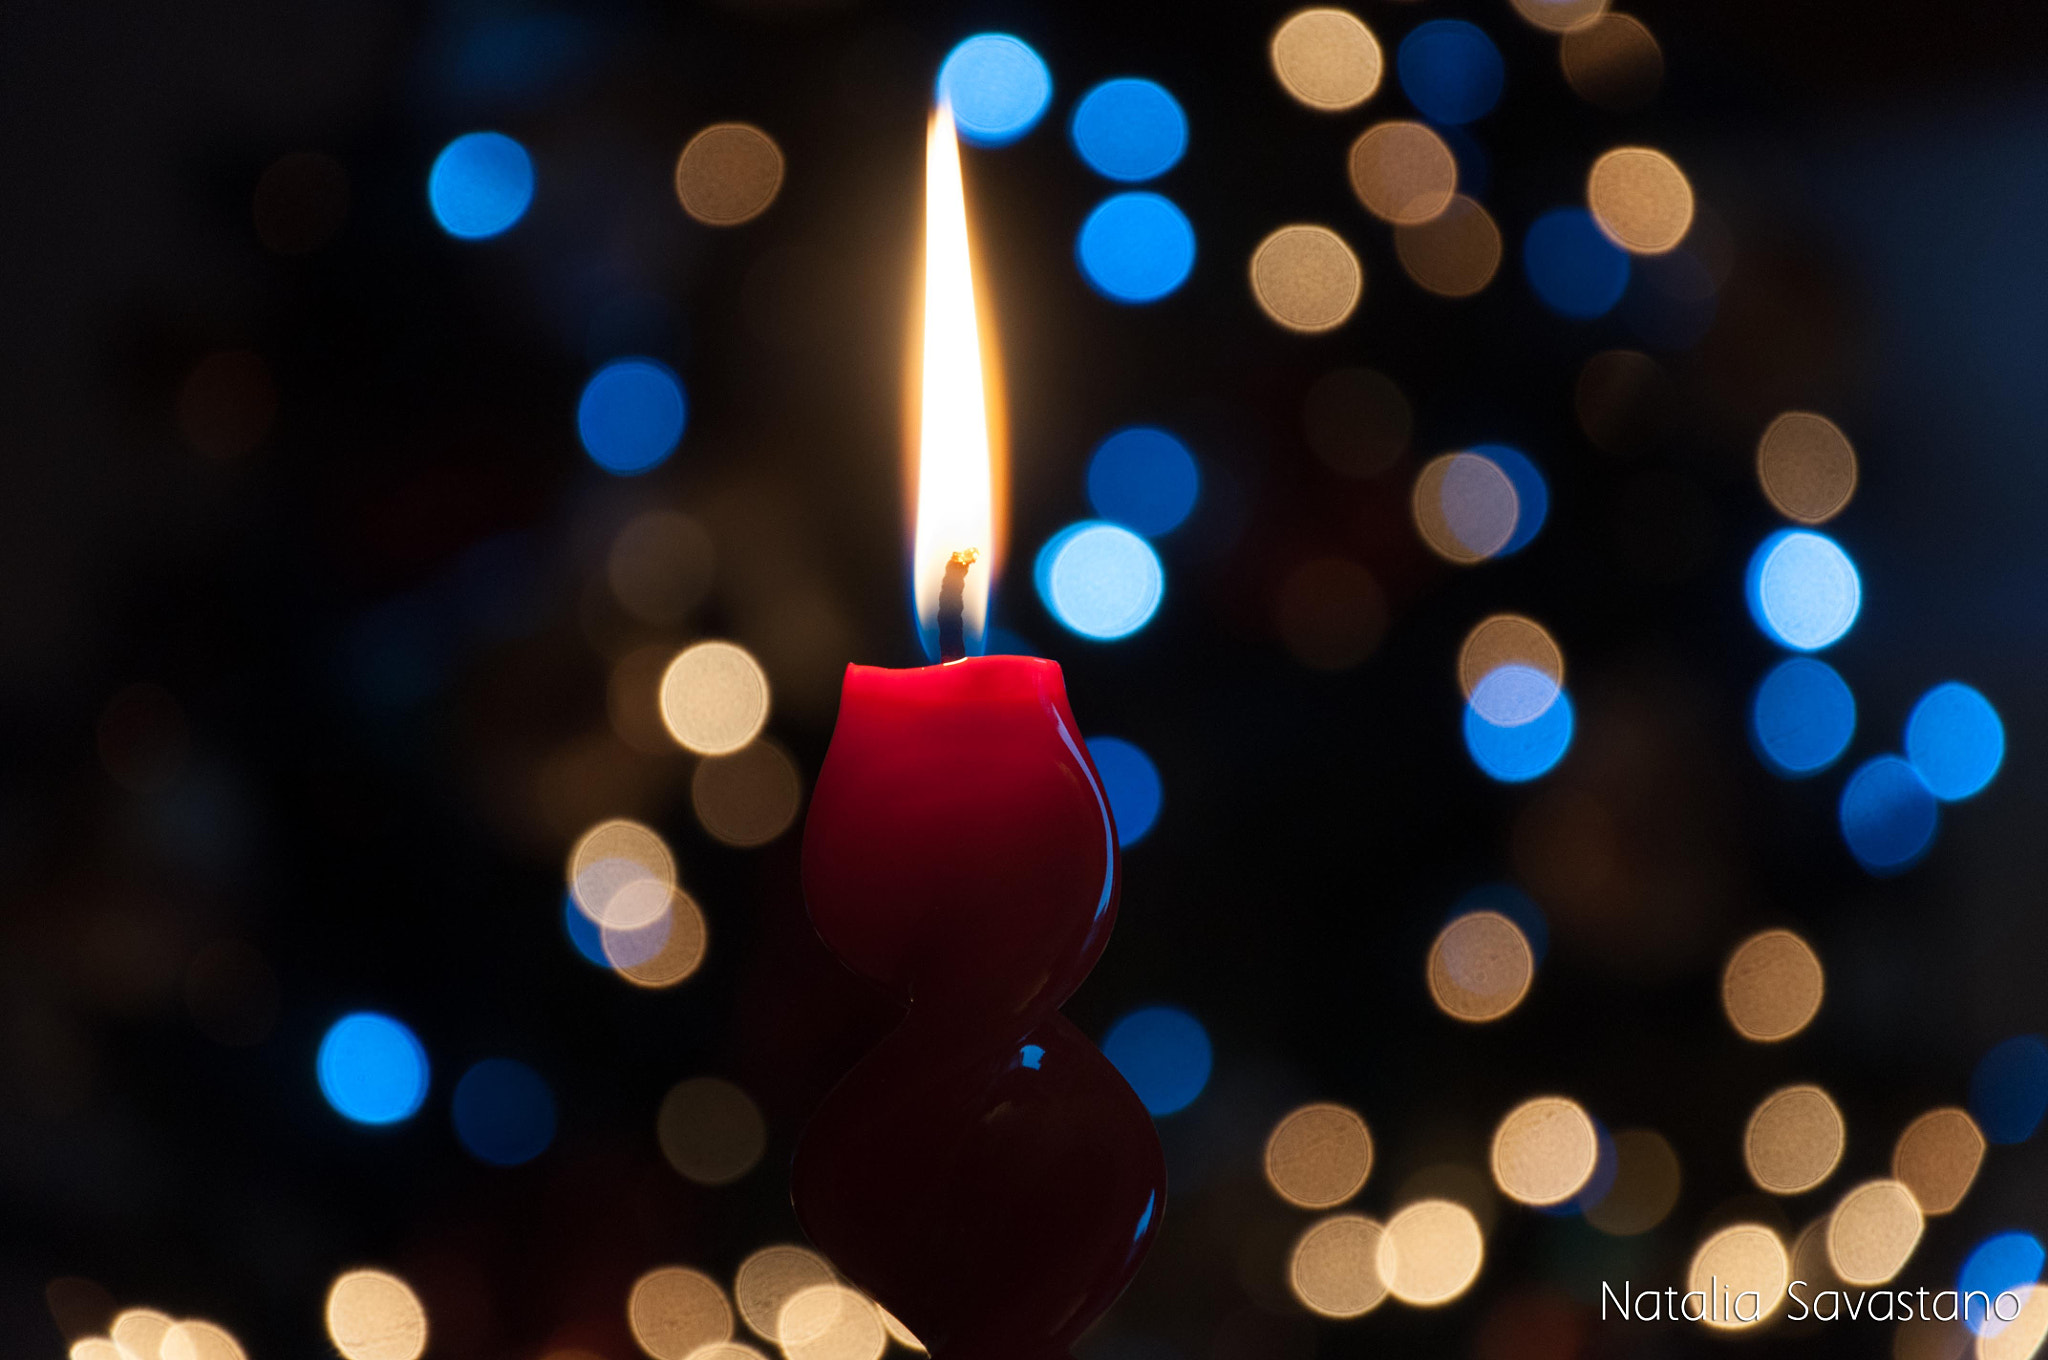 Photograph Red Candle in the Christmas Night 2 by Natalia Savastano on 500px